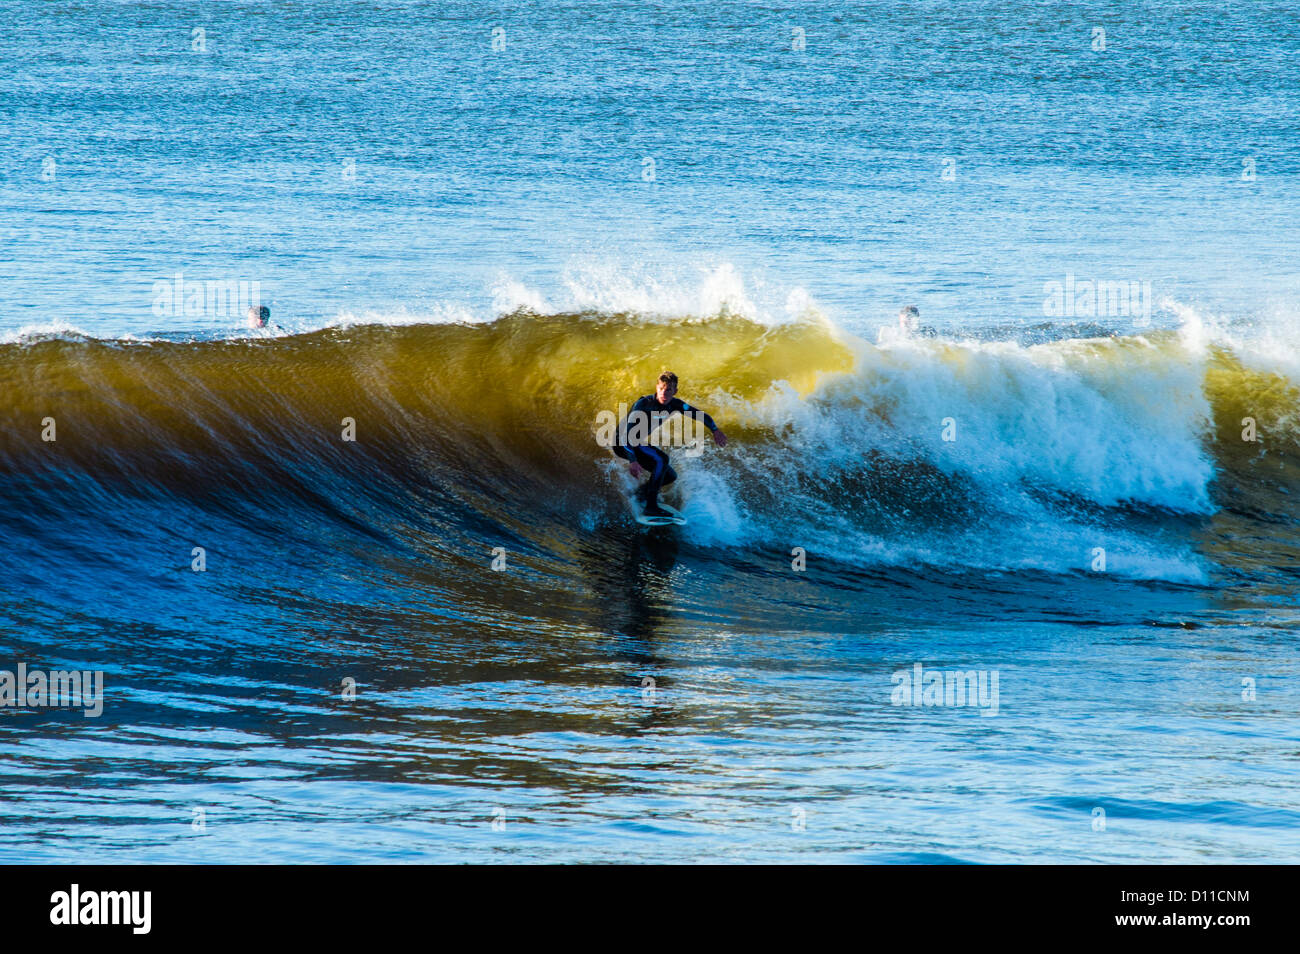 Aberystwyth Wales UK Surfers riding the waves at the mouth of the harbour in the warm autumn sunshine - Stock Image